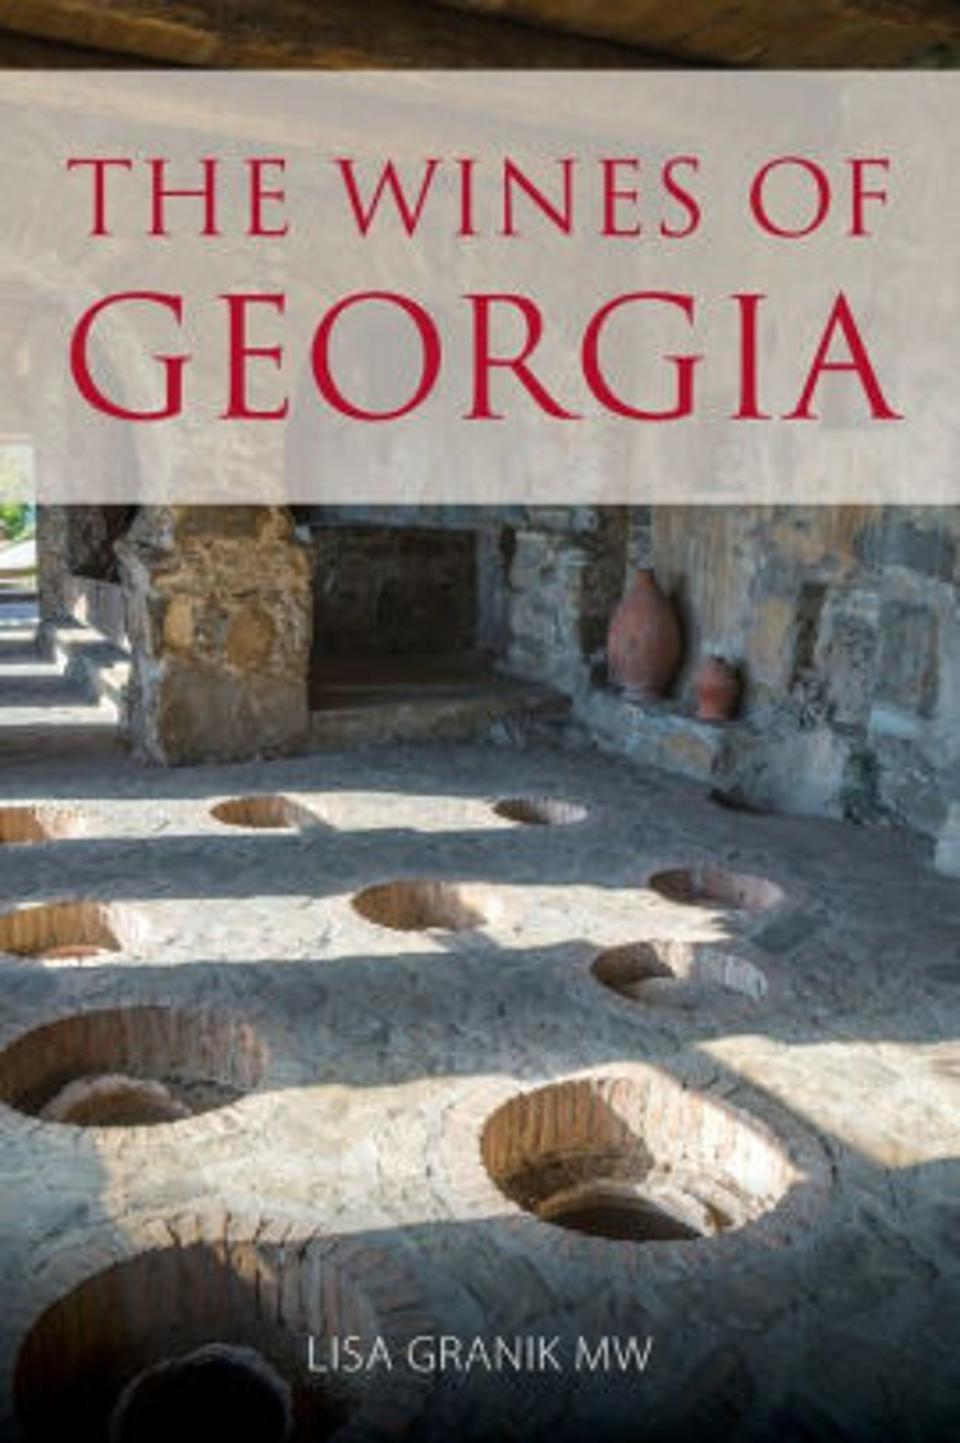 Text on book cover: The Wines of Georgia abov image of wine cellar